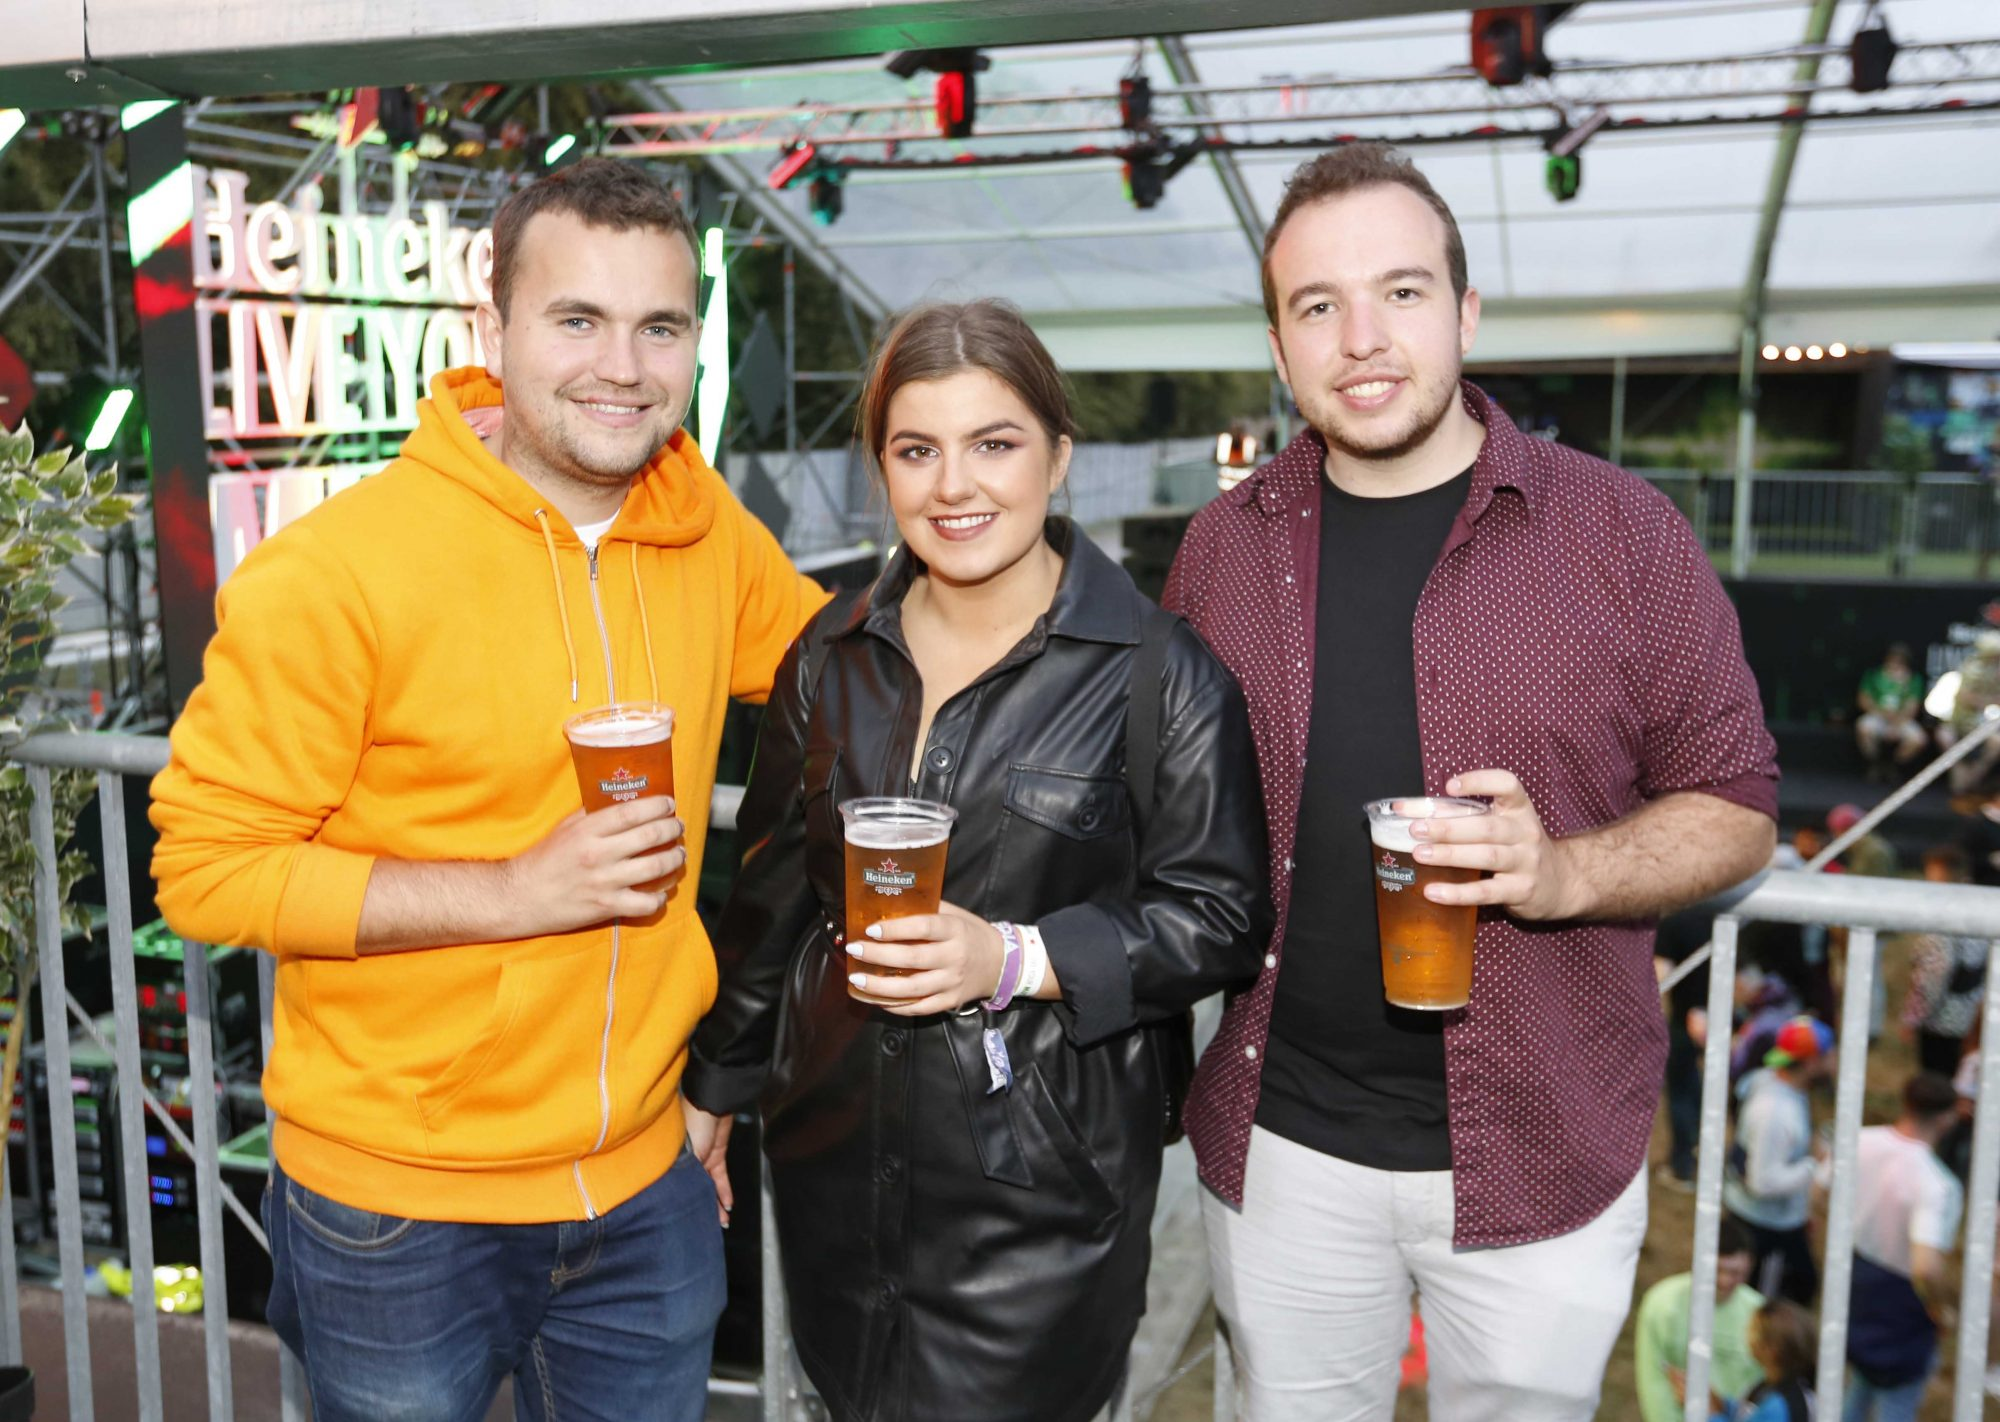 NO REPRO FEE 30/08/2019 Heineken Live Your Music Stage at Electric Picnic 2019. Pictured are (LtoR)  JP Kierans, Katie Gallagher and Mark Corcoran at the Heineken Live Your Music Stage at Electric Picnic 2019. This year's area is an enormous structure on two levels, with a glass roof that will keep festival-goers dry but let them dance beneath the sun and stars! The immersive and interactive lightshow has been reimagined for 2019 which, combined with the state-of-the-art soundsystem, make Live Your Music the most impressive festival stage in the country. Photo: Sasko Lazarov/Phorocall Ireland